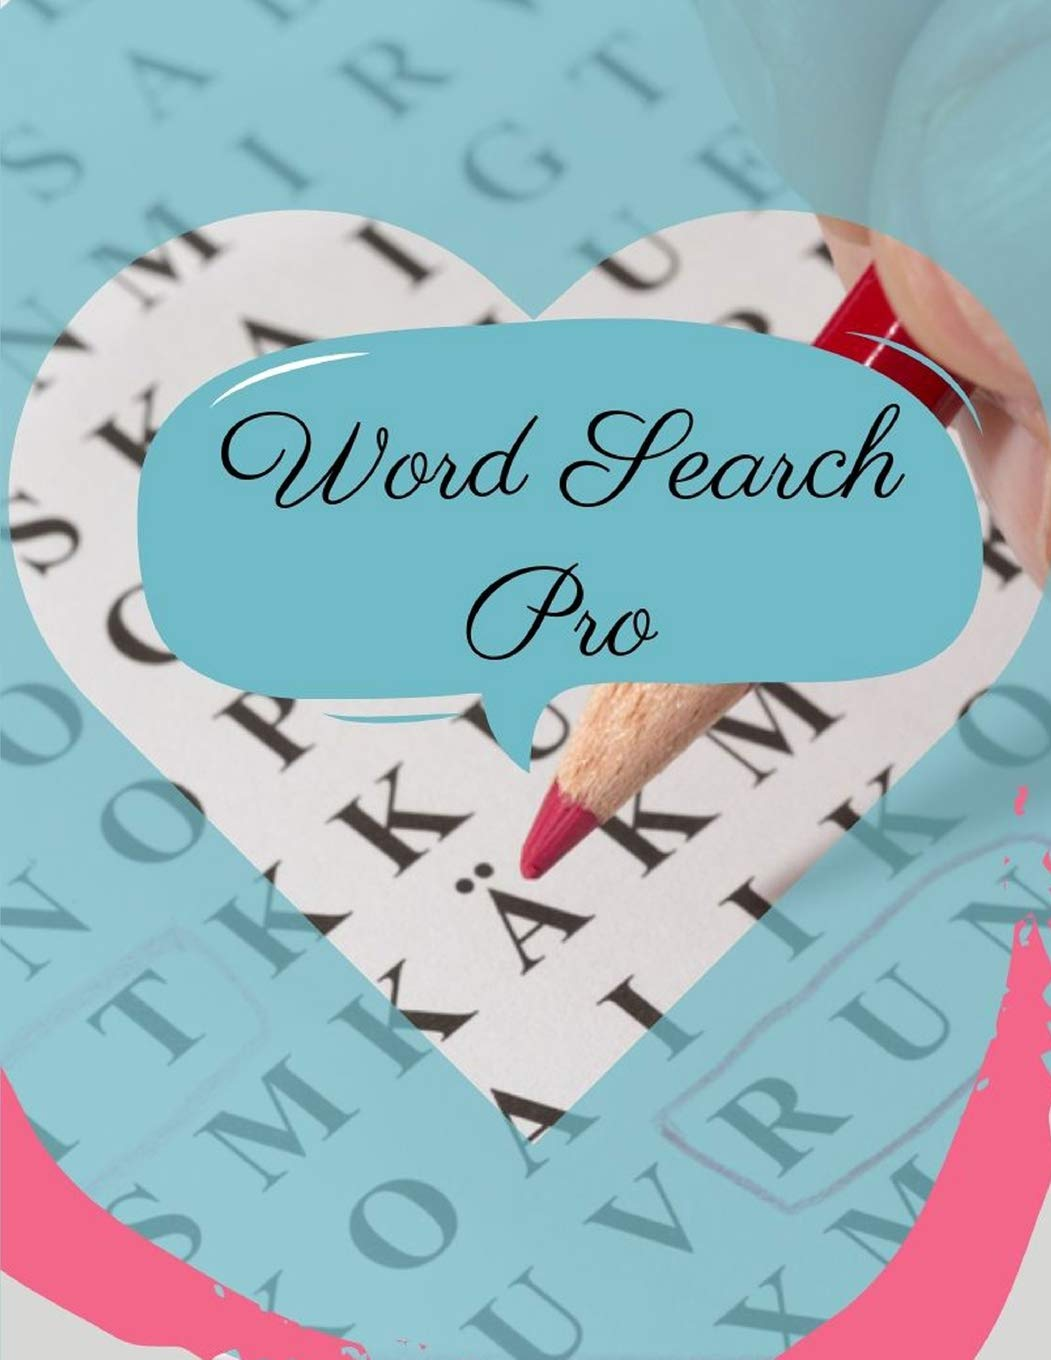 Word Search Pro: Peak Brain Training, Extreme Word Search